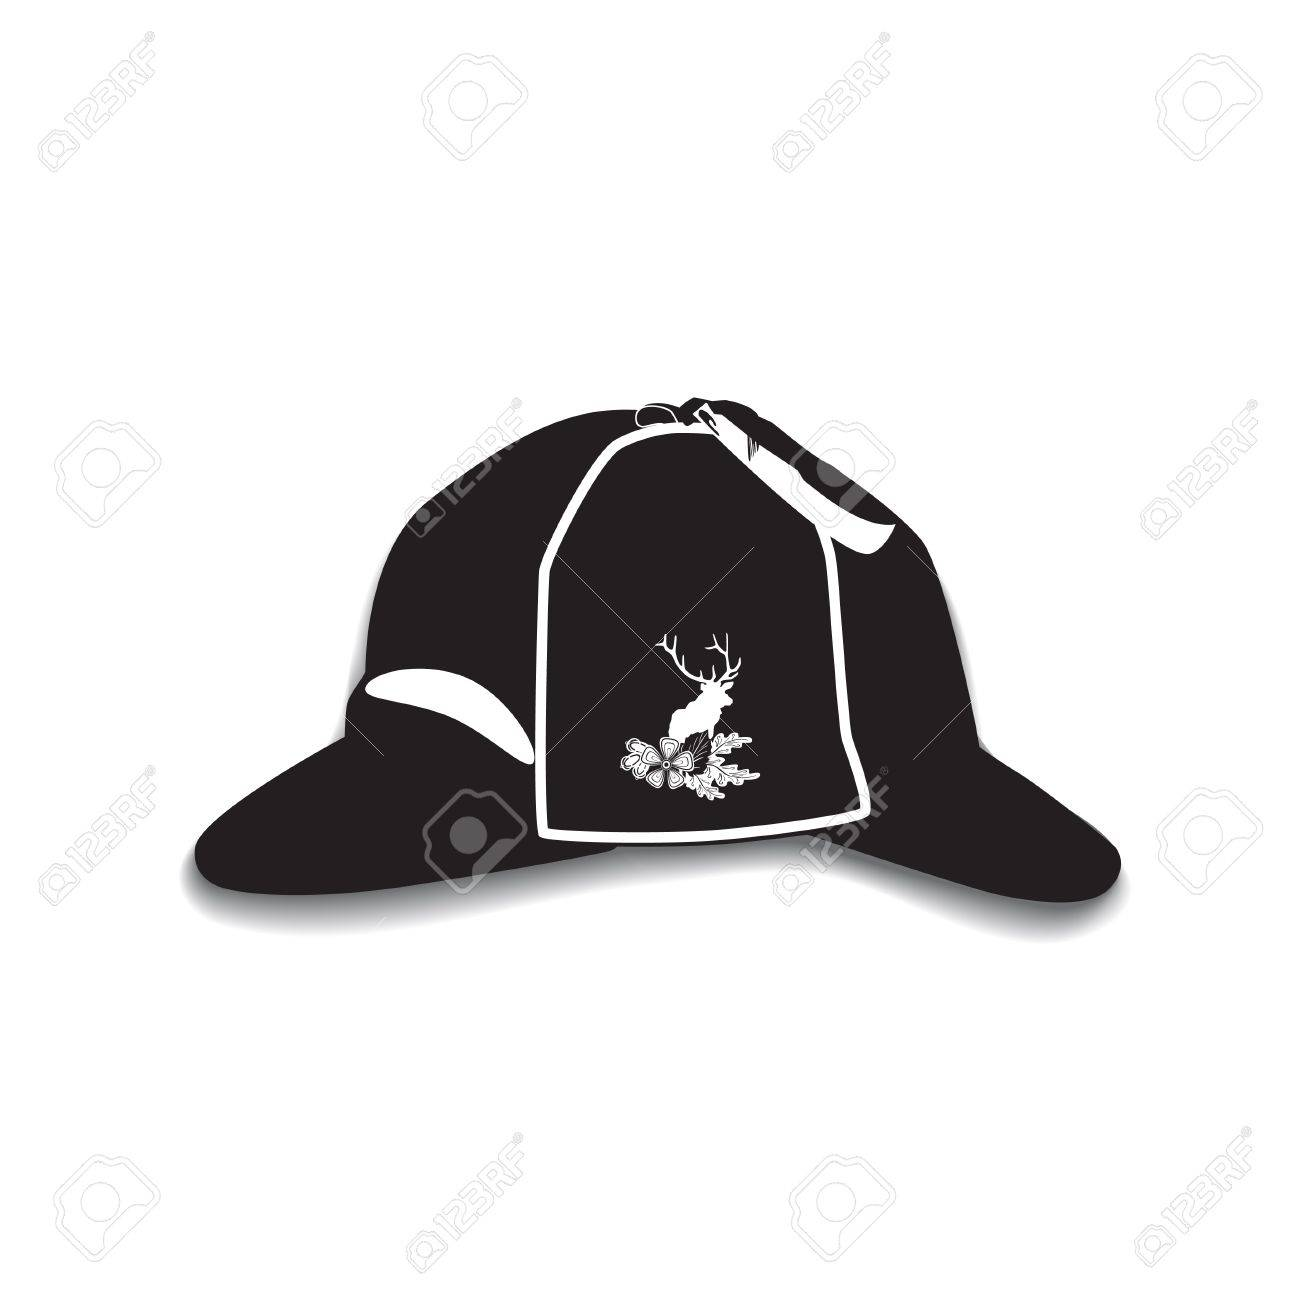 Vector - Vector illustration of detective sherlock holmes hat isolated on  white background. Black and white deerstalker hat with cloth badge deer  silhouette ... dbb1666474e